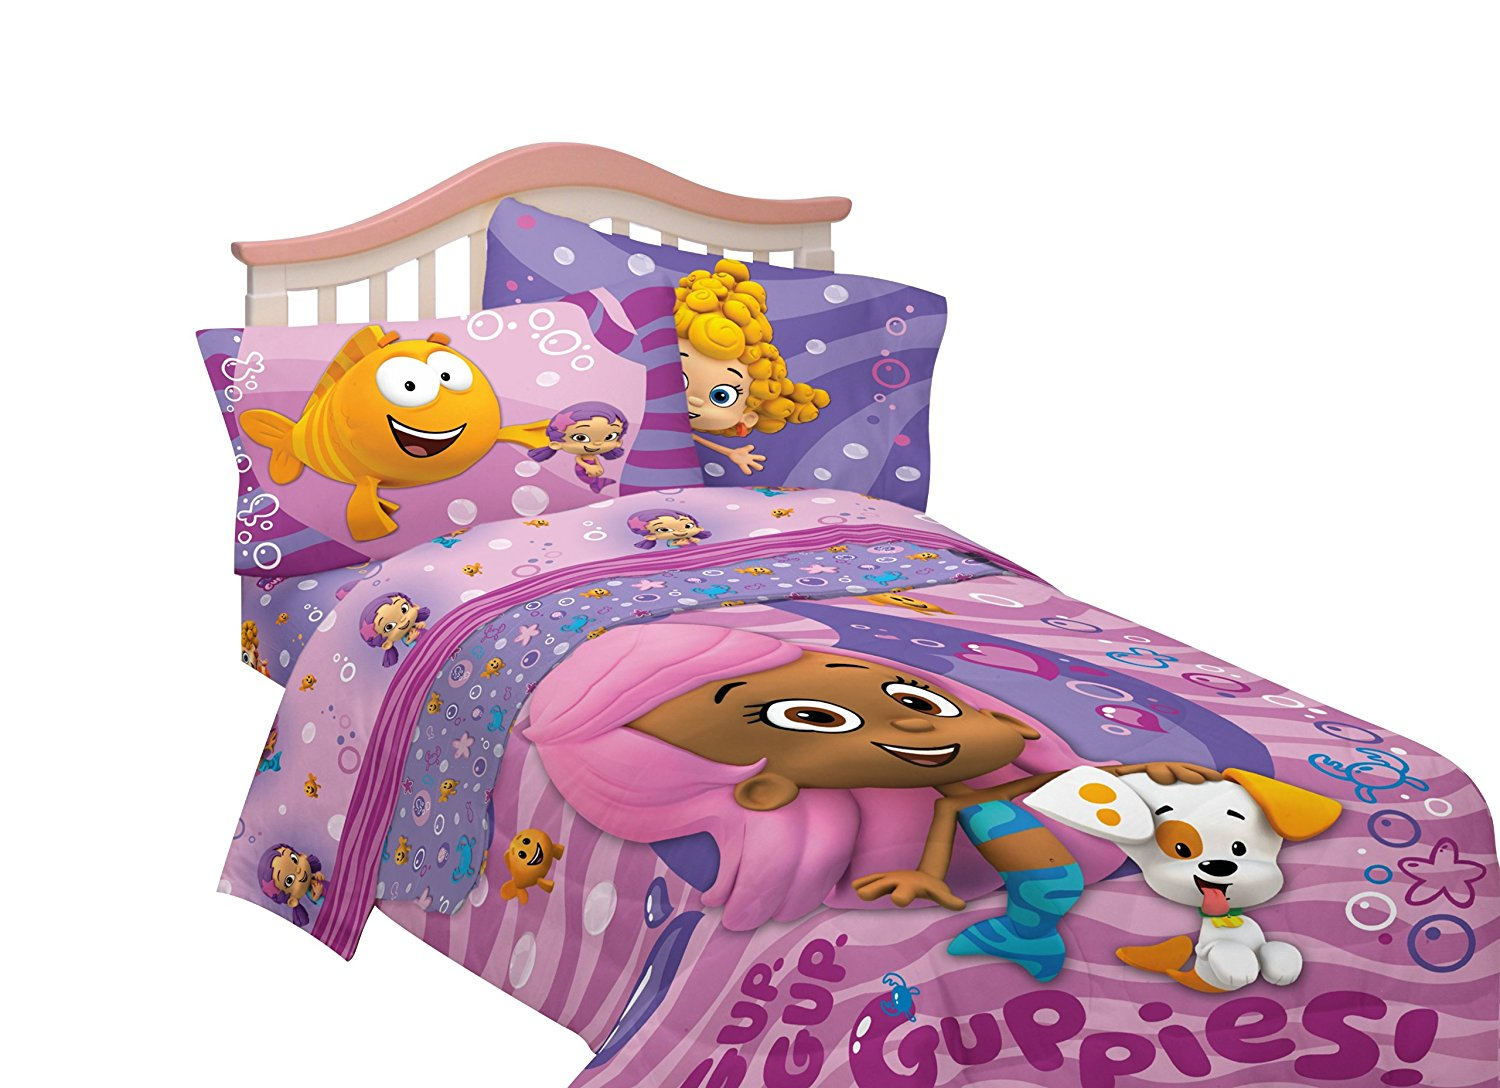 Jcpenney Kids Bedding | Bubble Guppies Bedding | Minecraft Comforter Set